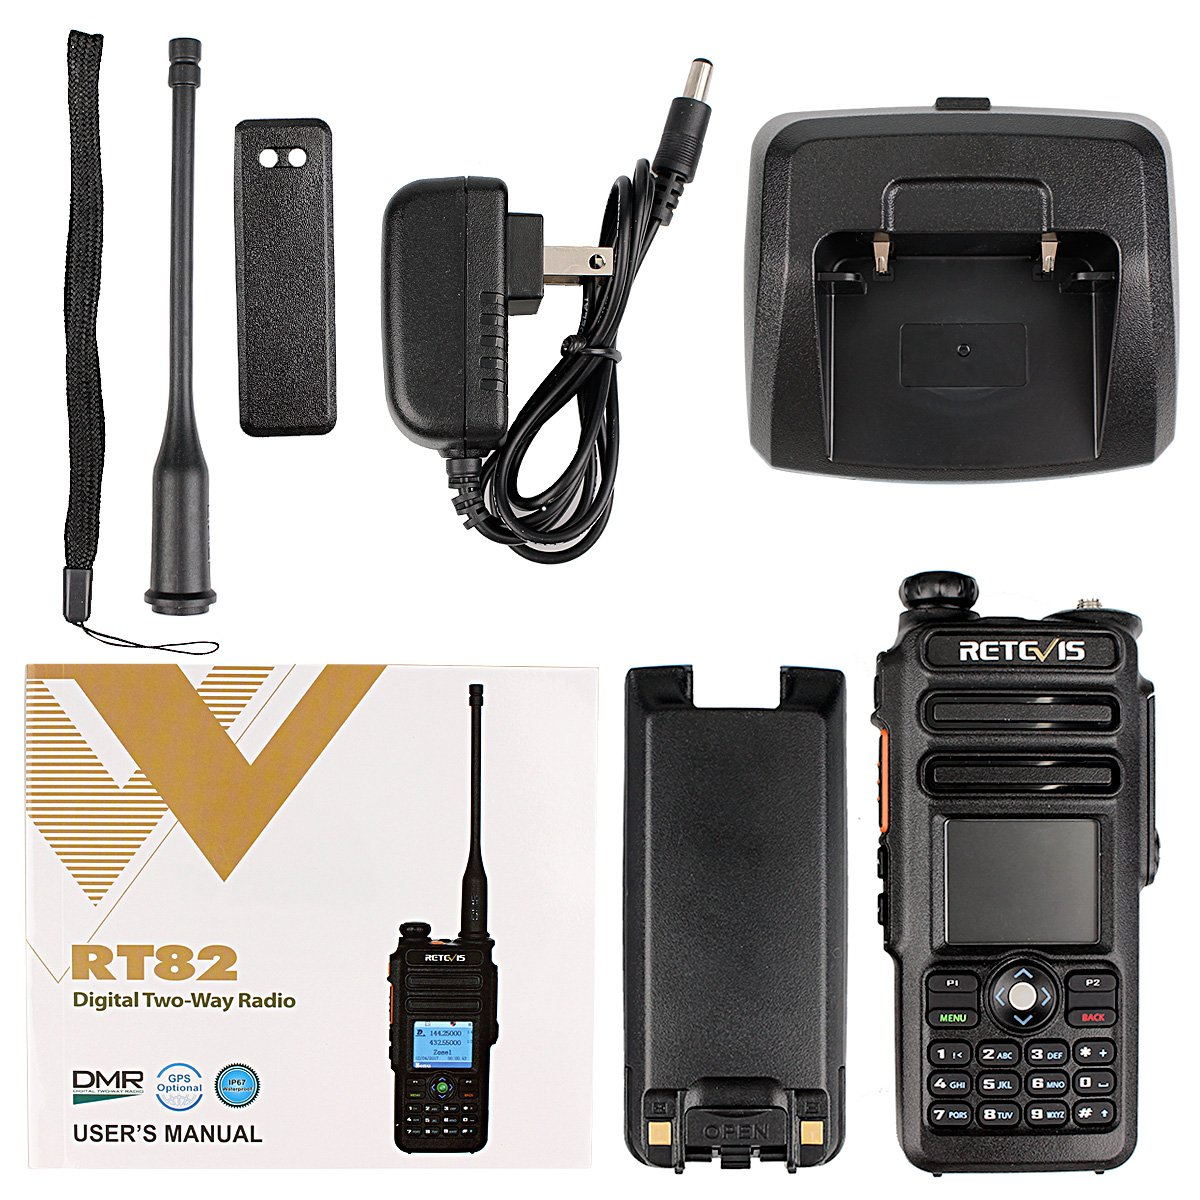 Retevis RT82 IP67 Waterproof Dual Band DMR Digital/Analog Two Way Radio 5W 136-174MHZ/400-480MHZ 3000 Channels 10000 Contacts Ham Amateur Radio with Record Function and Programming Cable by Retevis (Image #9)